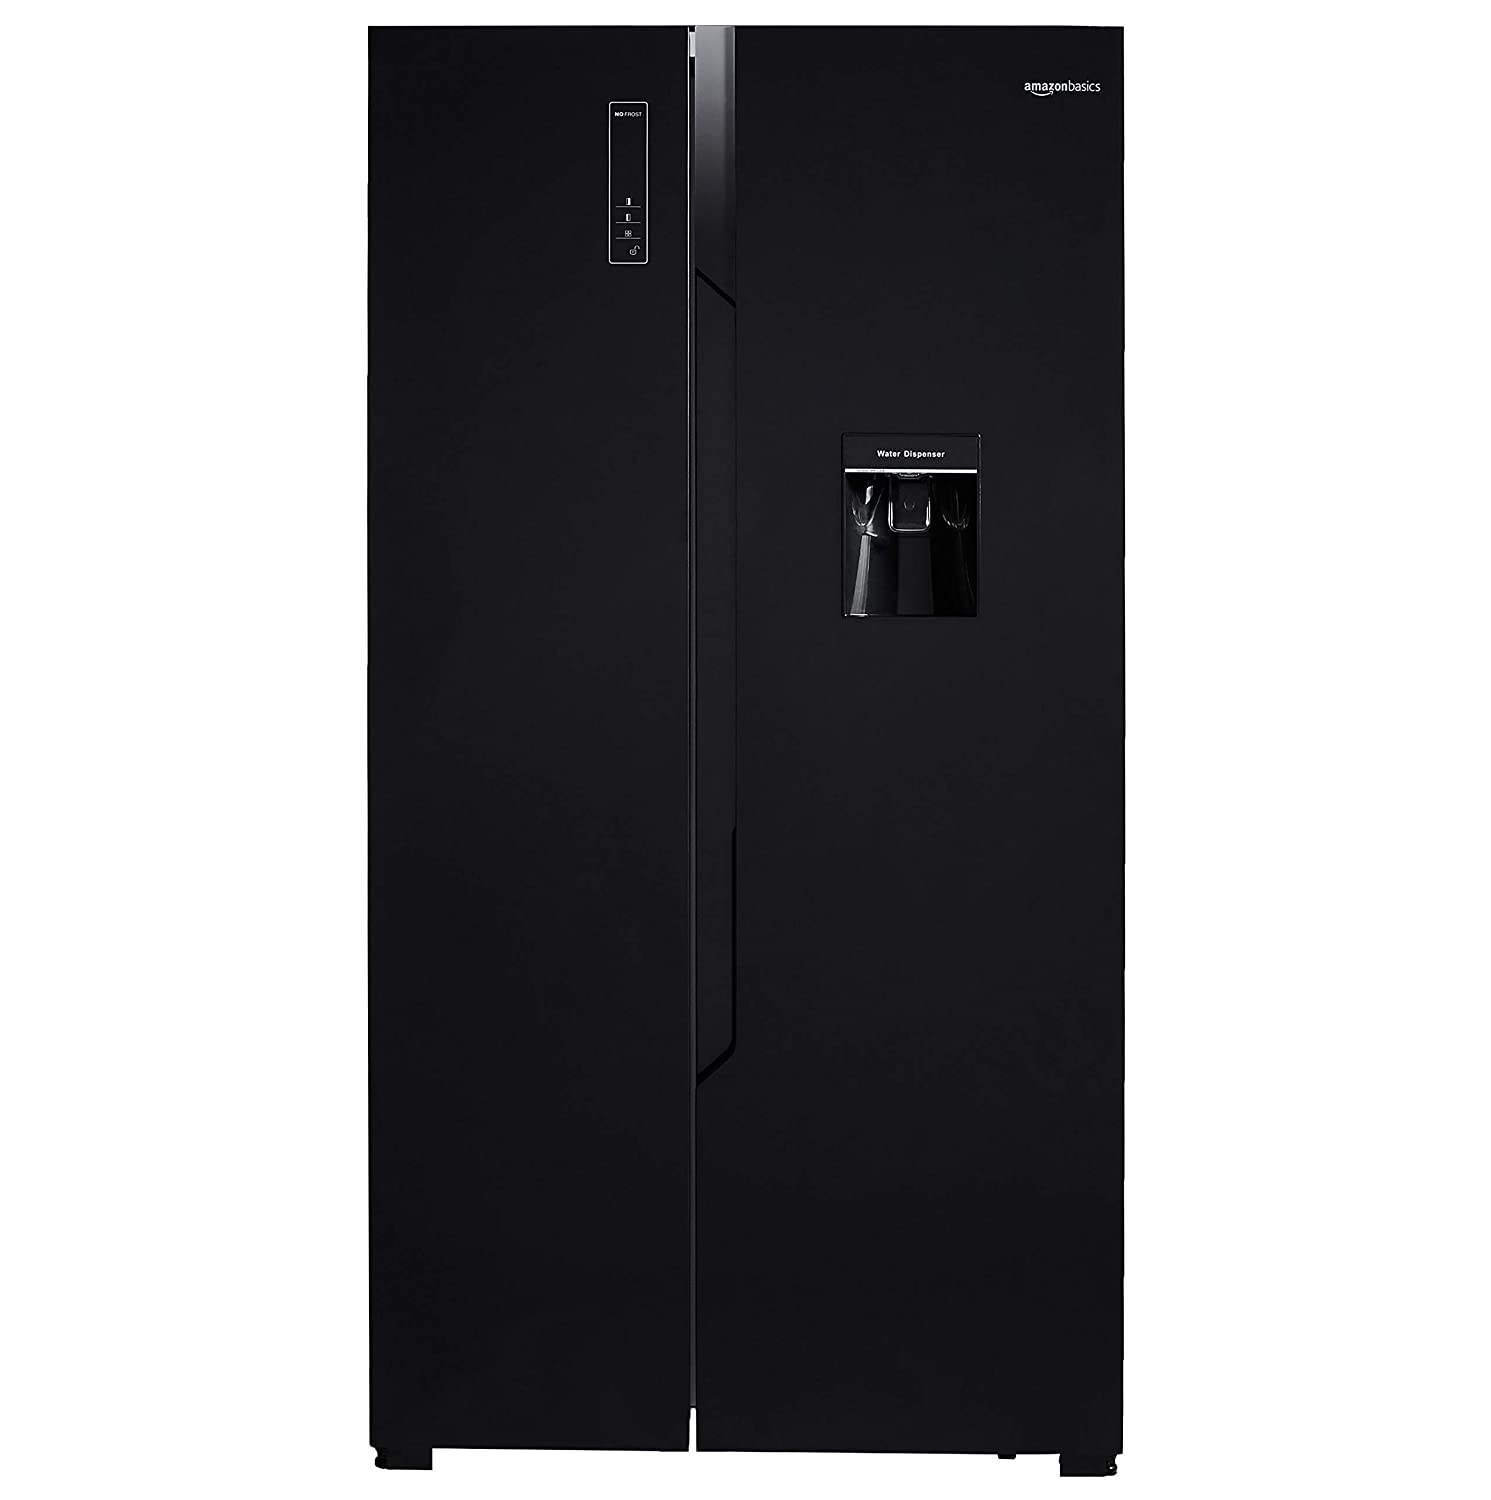 AmazonBasics 564 L frost free Side by Side refrigerator